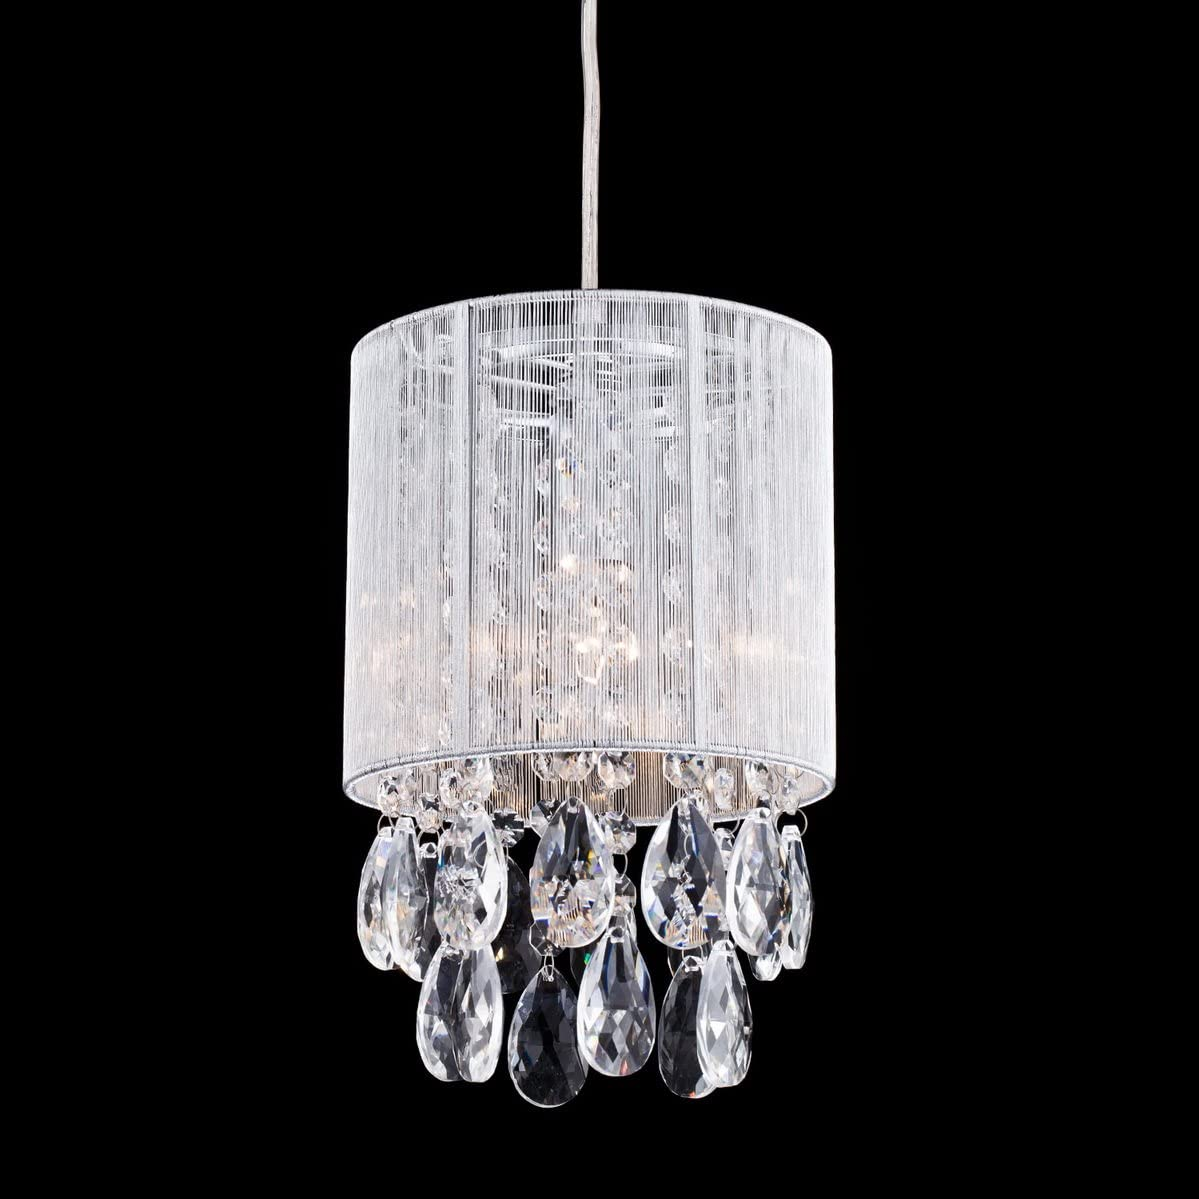 Dazhuan Modern Crystal Drops Pendant Ceiling Lighting Chandelier Lamp Hanging Light